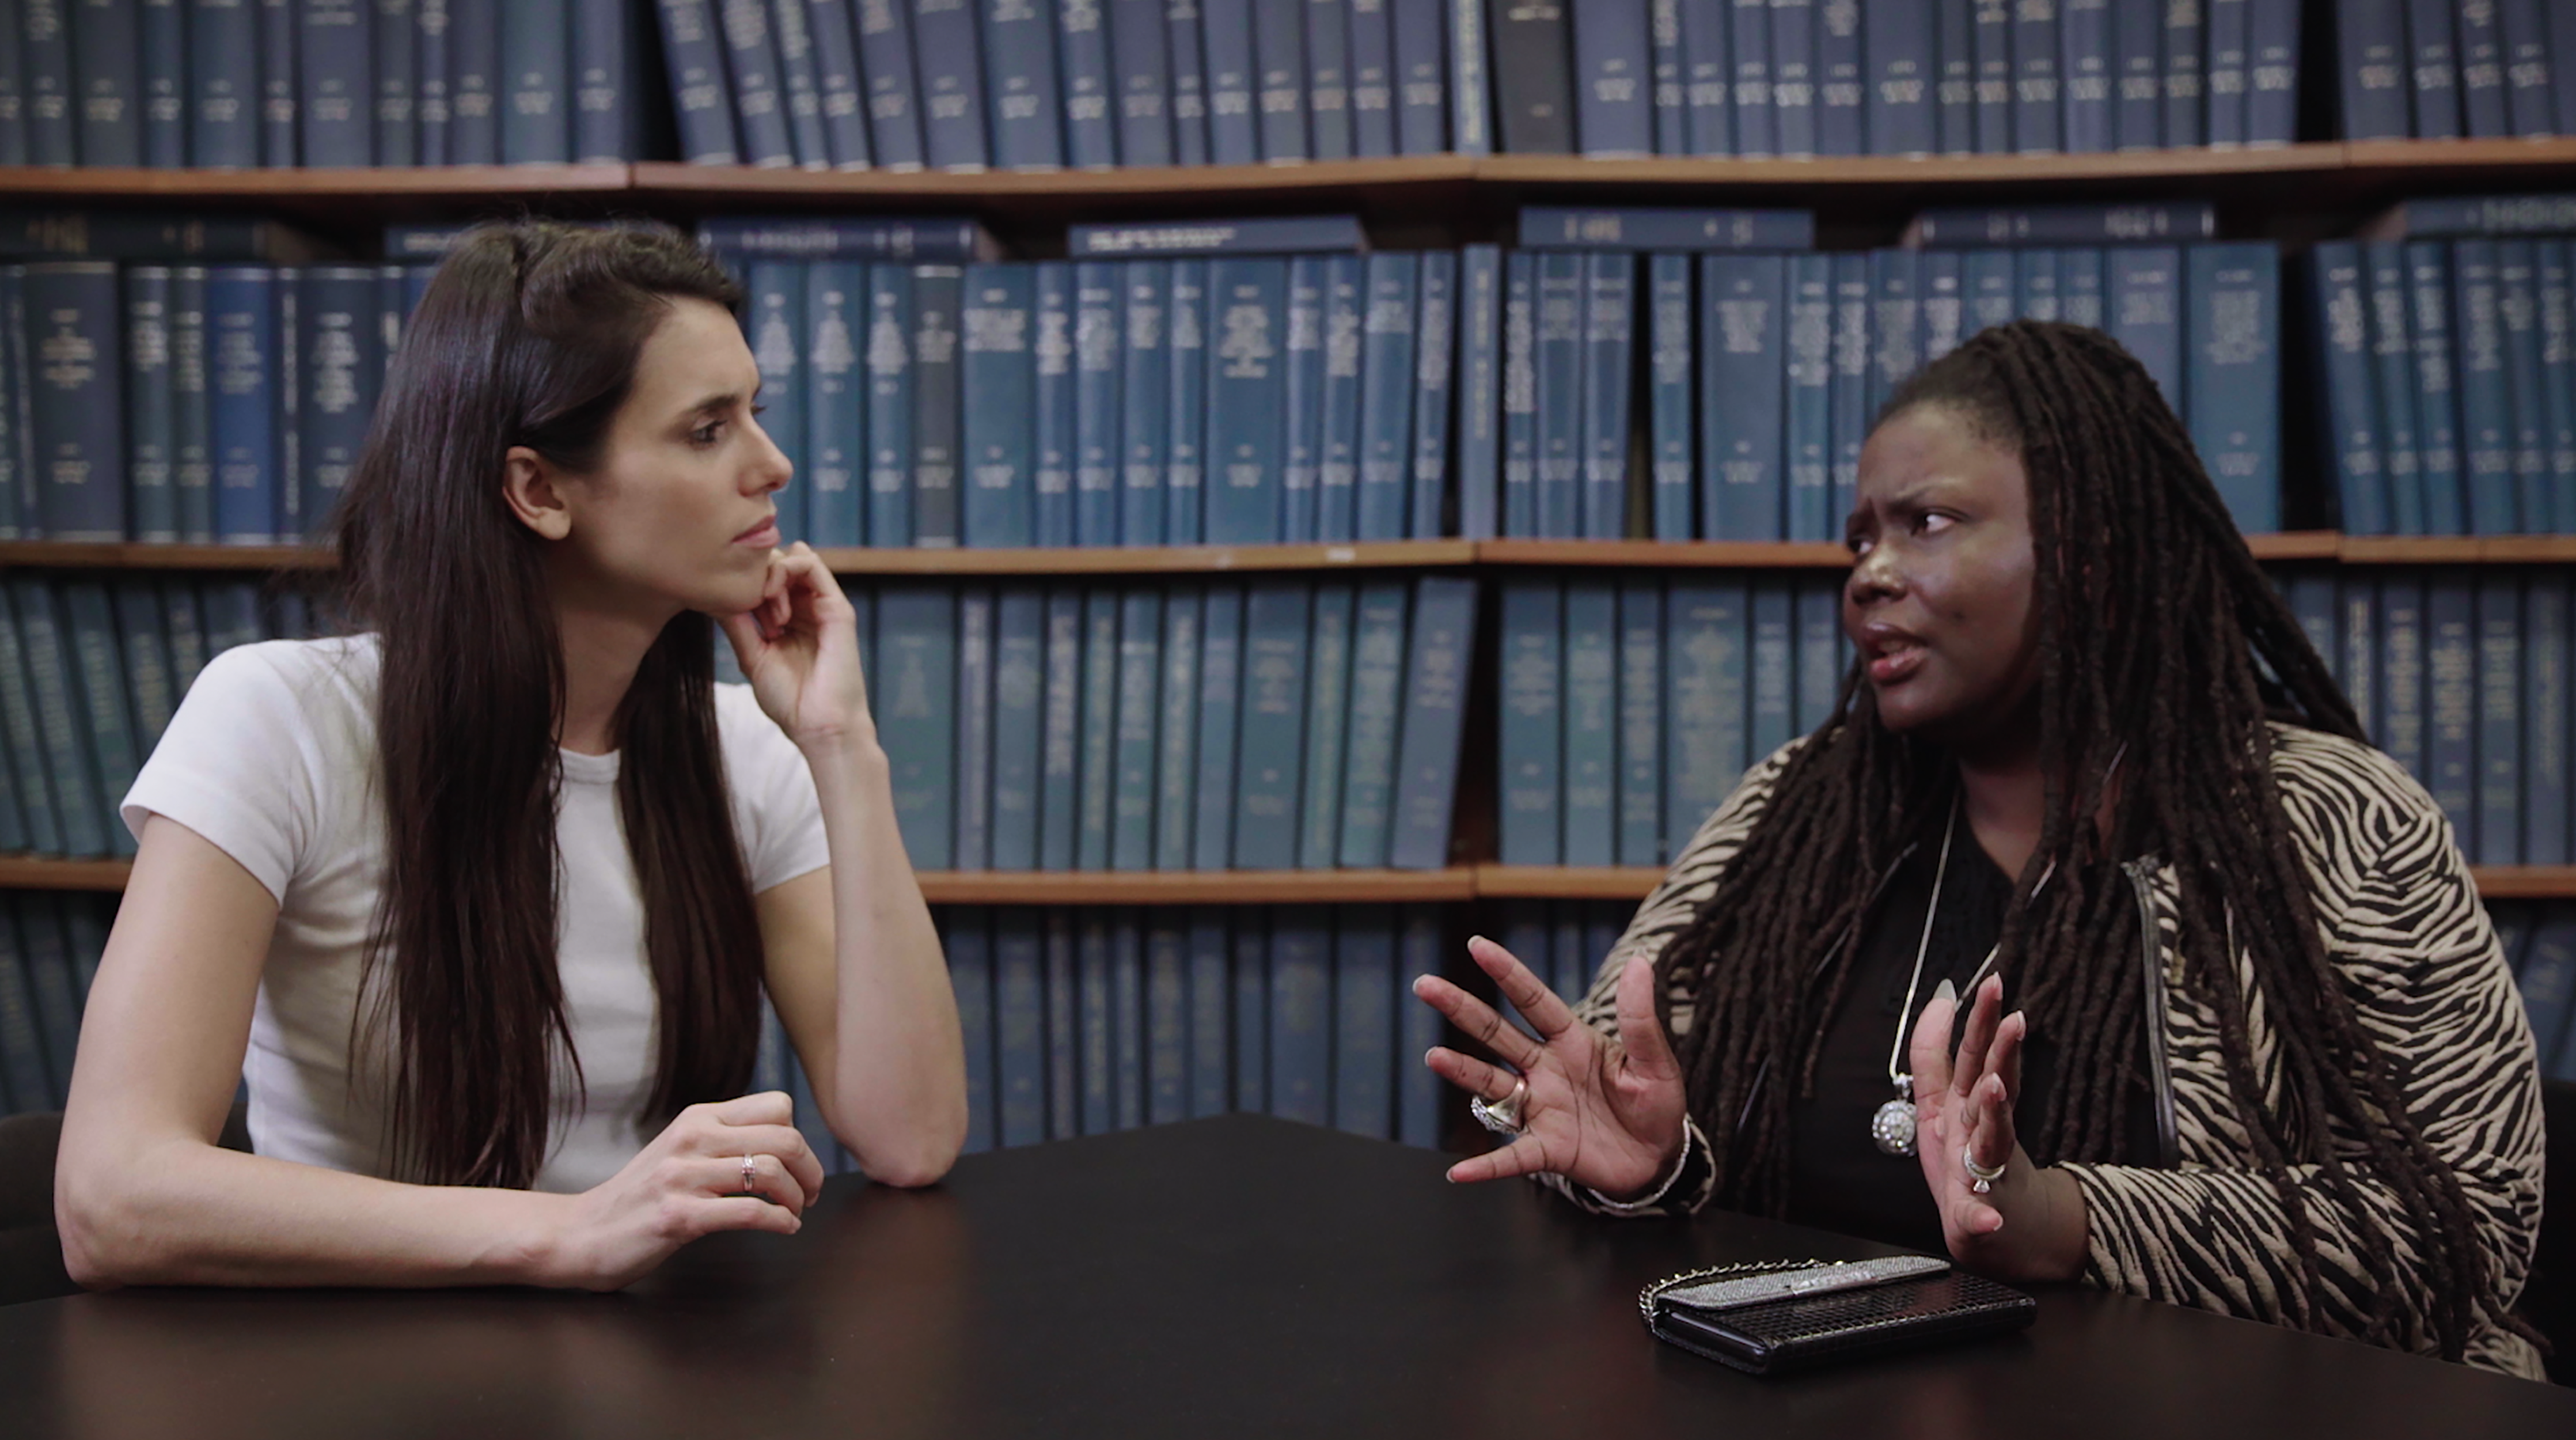 Liz Plank talks to Pastor Damele Collier about the rise in infidelity rates among women